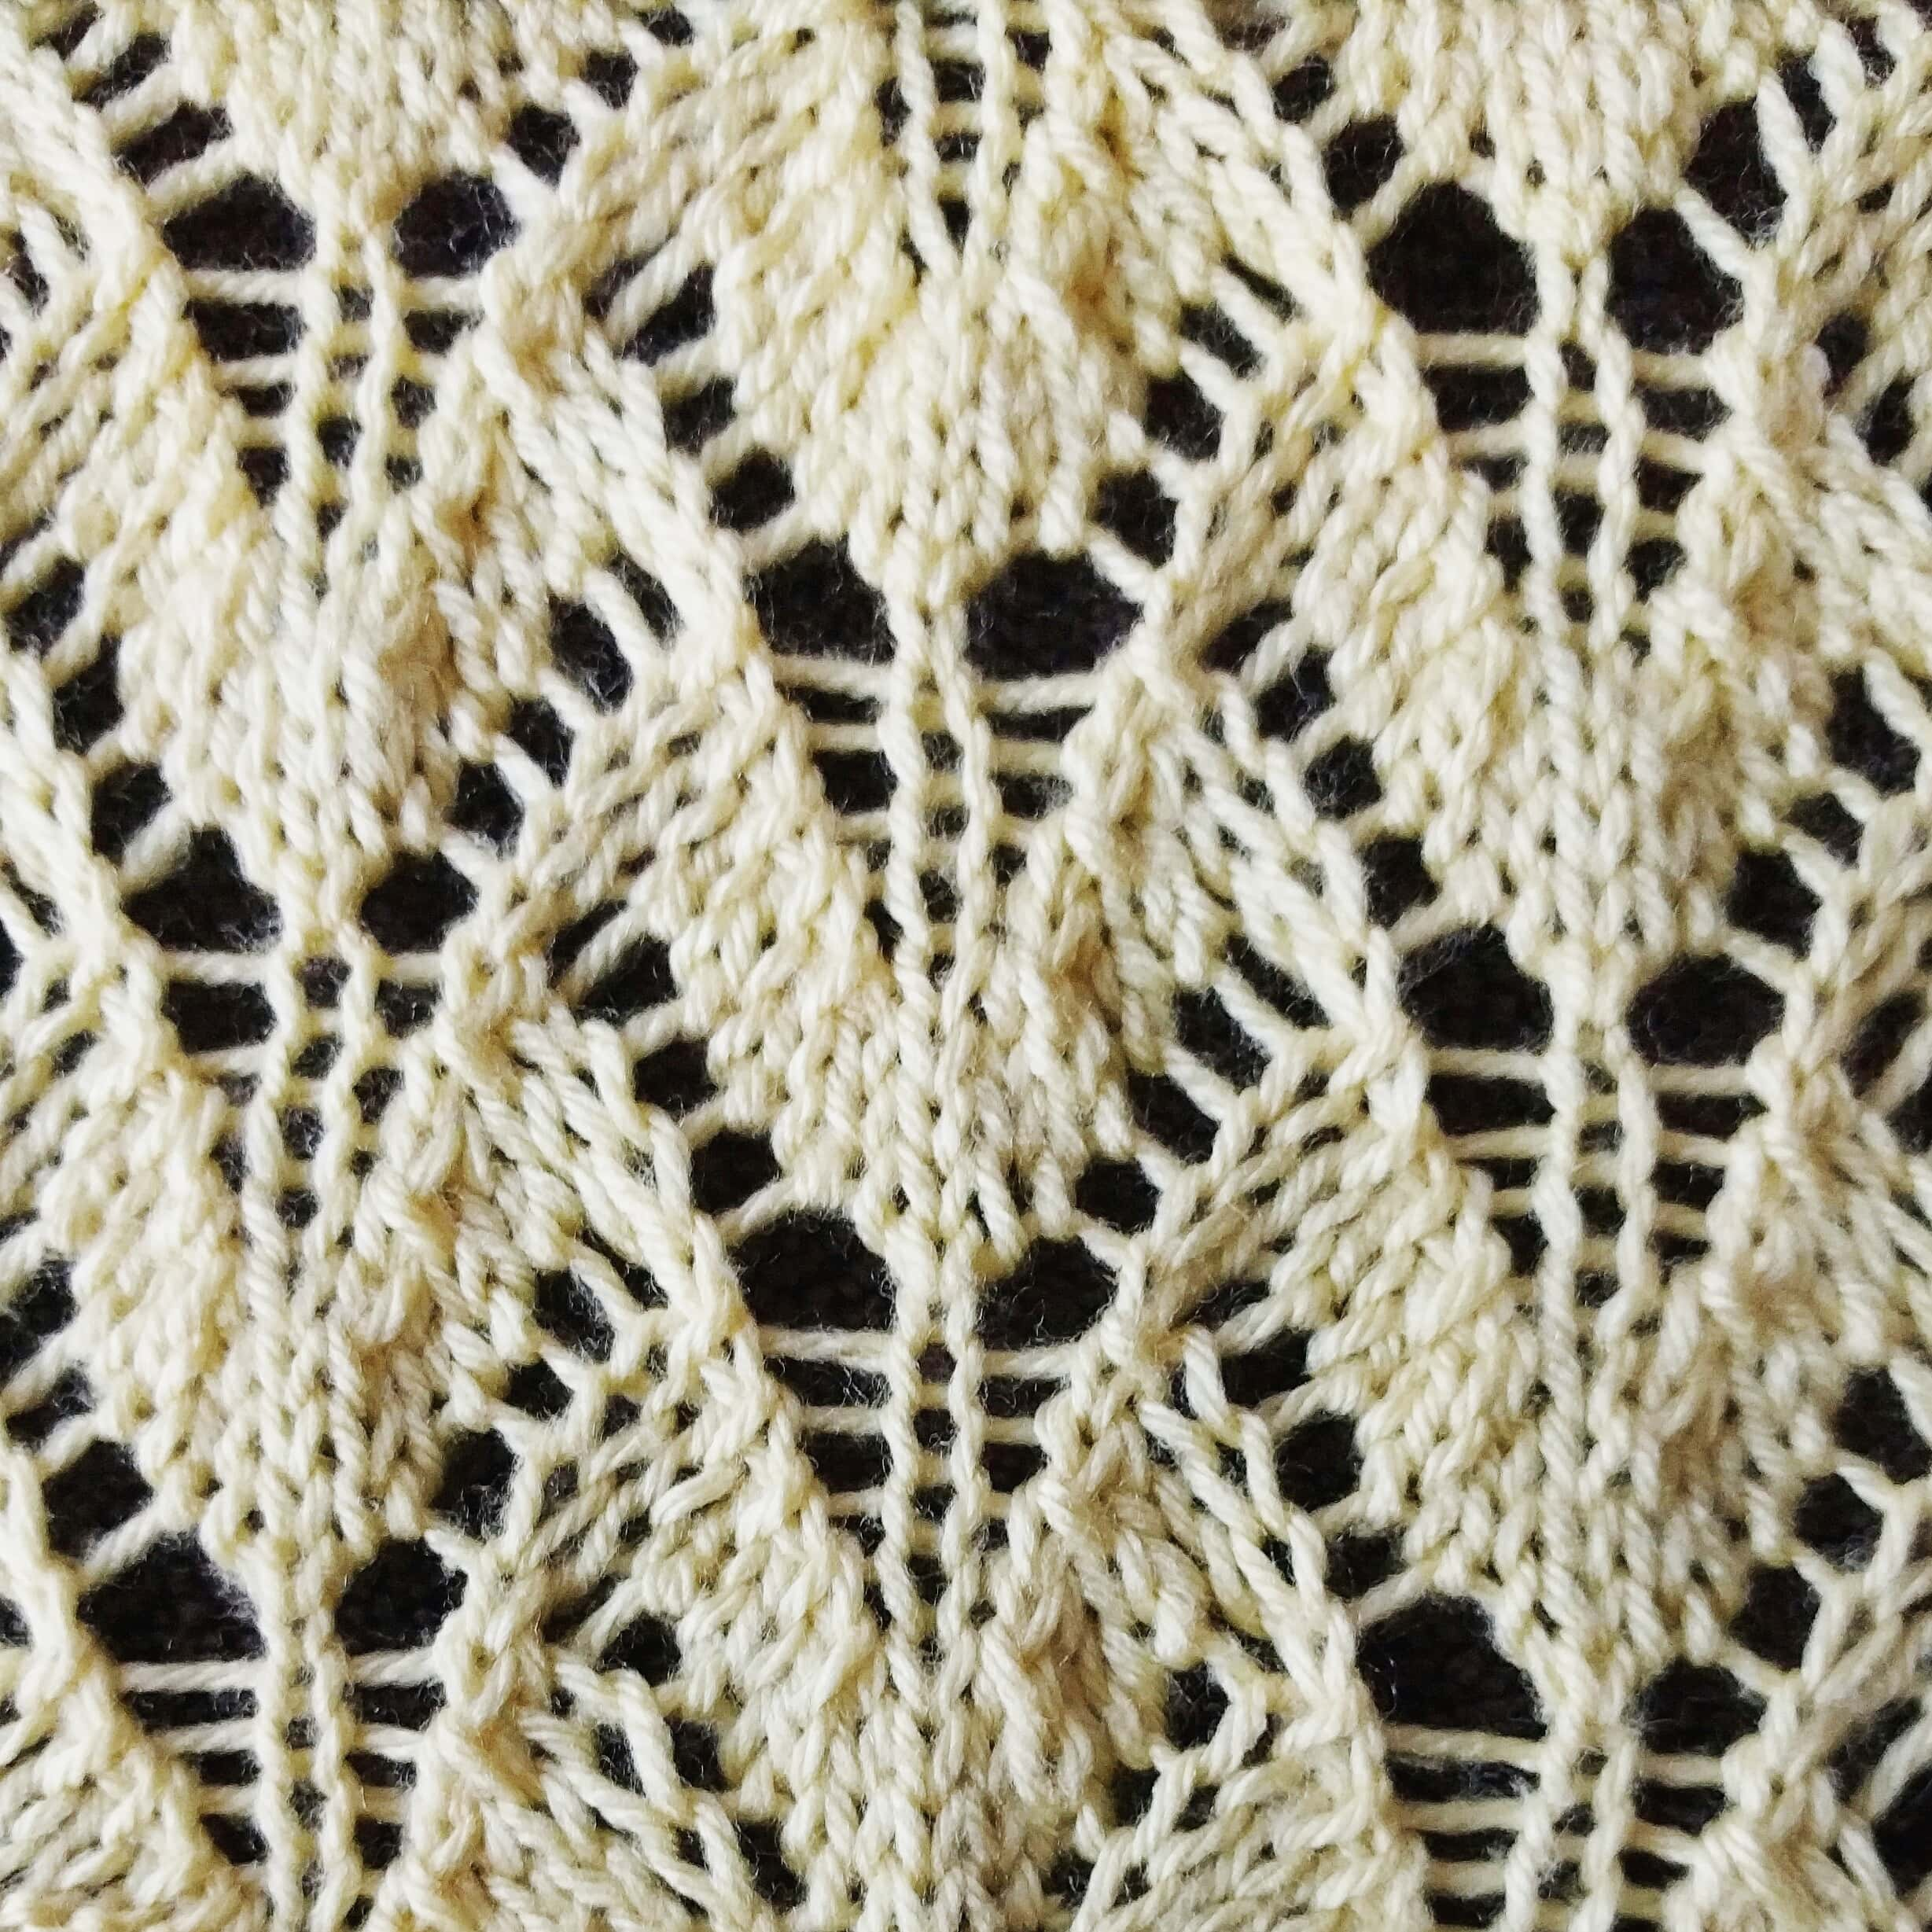 Knitting Stitches Lace Simple : Purl Avenue - Where Knitting Inspiration Meets Creativity